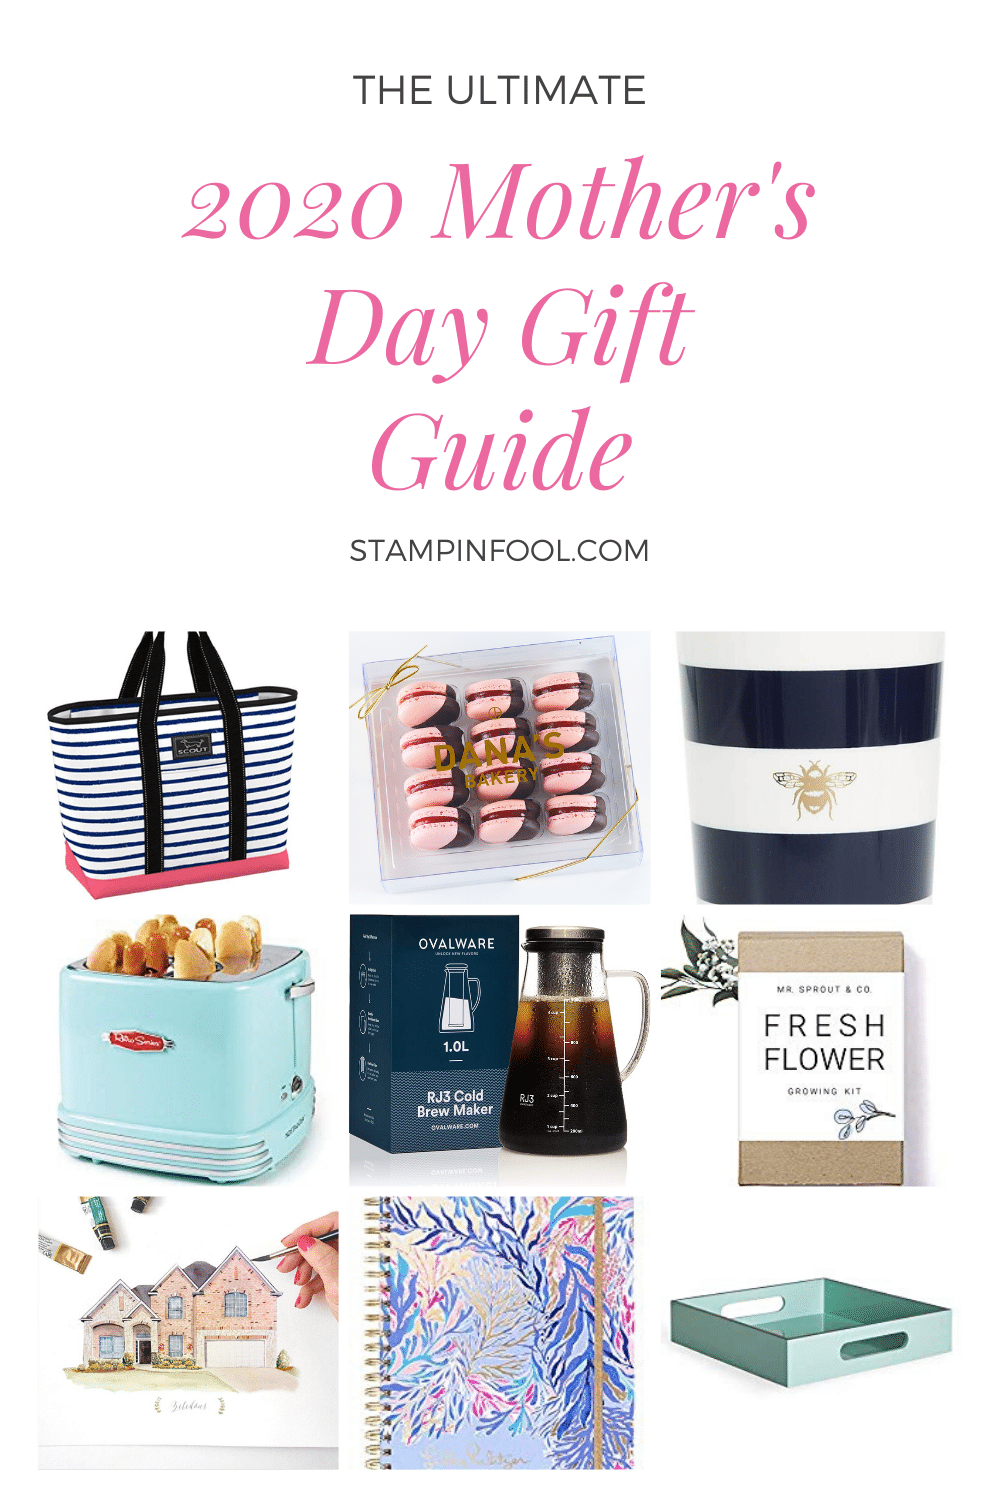 2020 Mother's Day Gift Guide